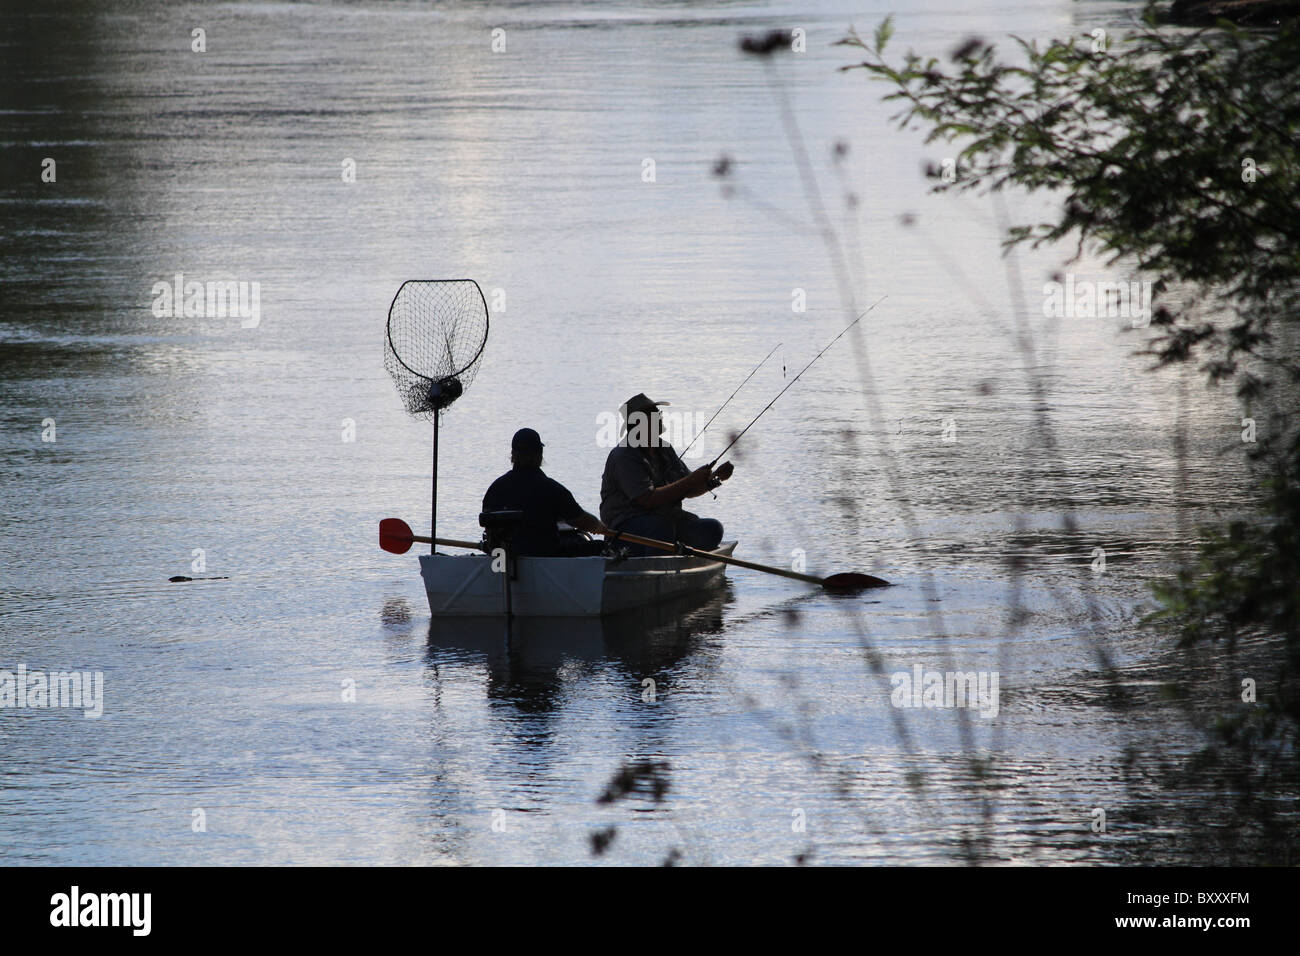 Fishing Mates - Stock Image